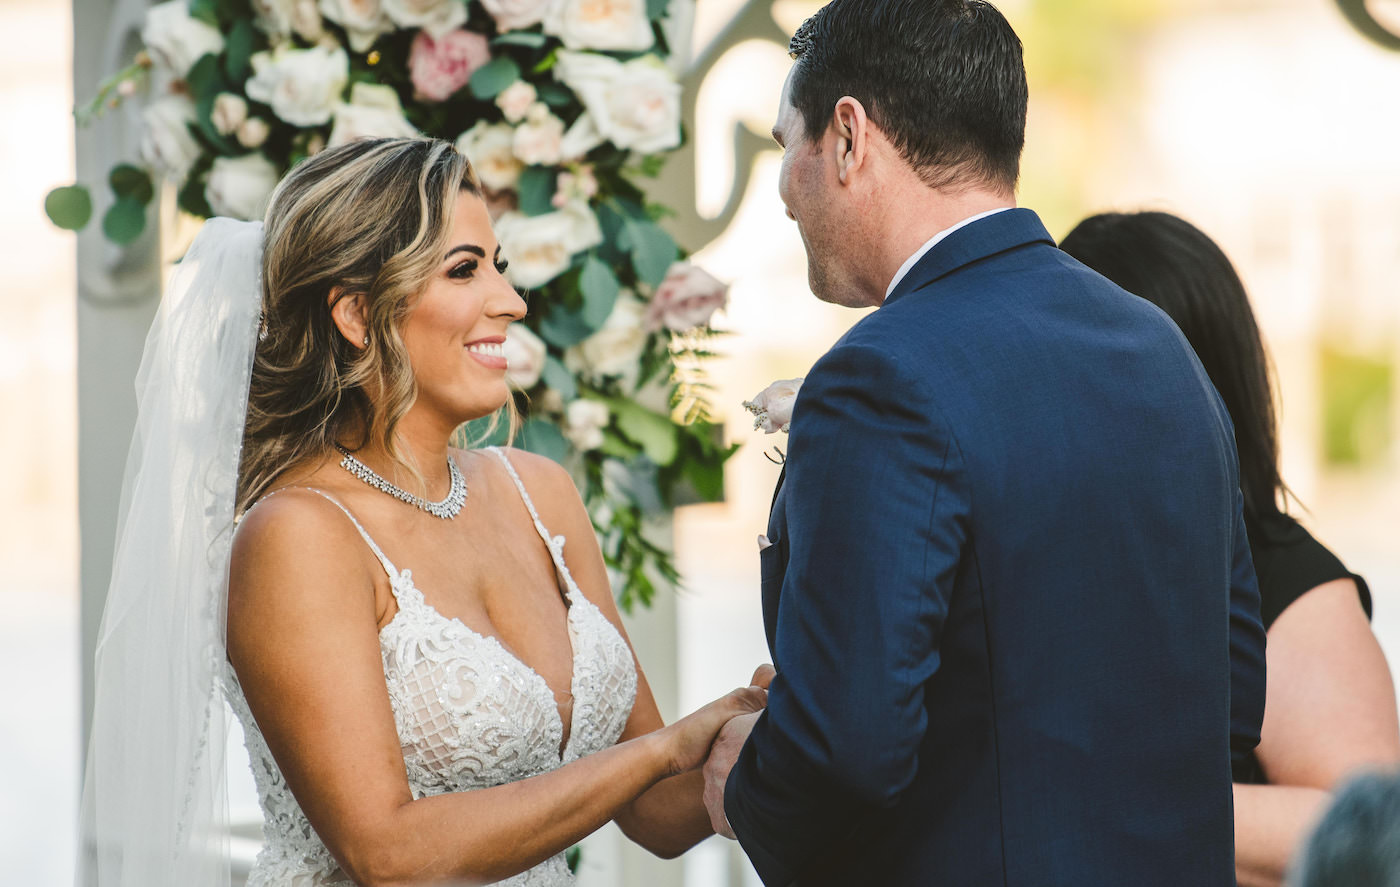 Bride and Groom Exchanging Vows during Outdoor Garden Ceremony | Champagne Illusion Lace V Neck Spaghetti Strap Wedding Dress Bridal Gown